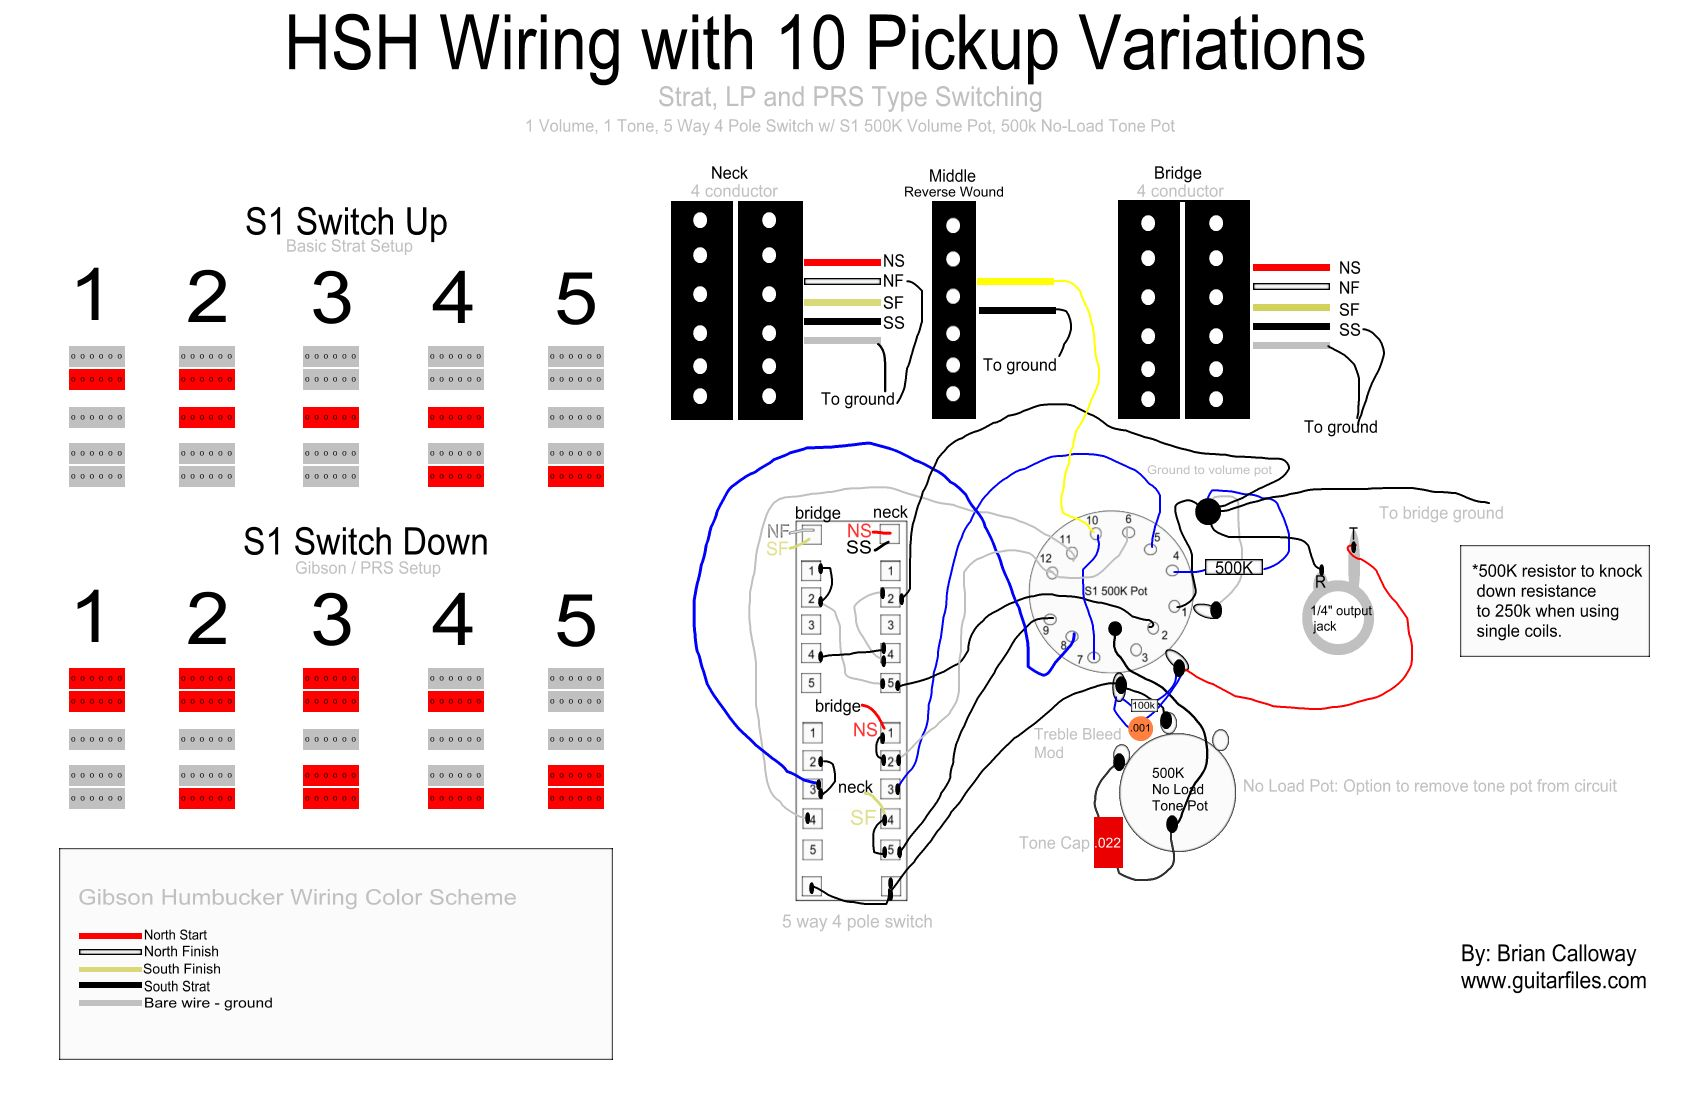 hsh guitar wiring 10 pickup combinations 4 pole switch and s1 rh pinterest com HSH Guitar 5-Way Strat Switch Wiring Diagram